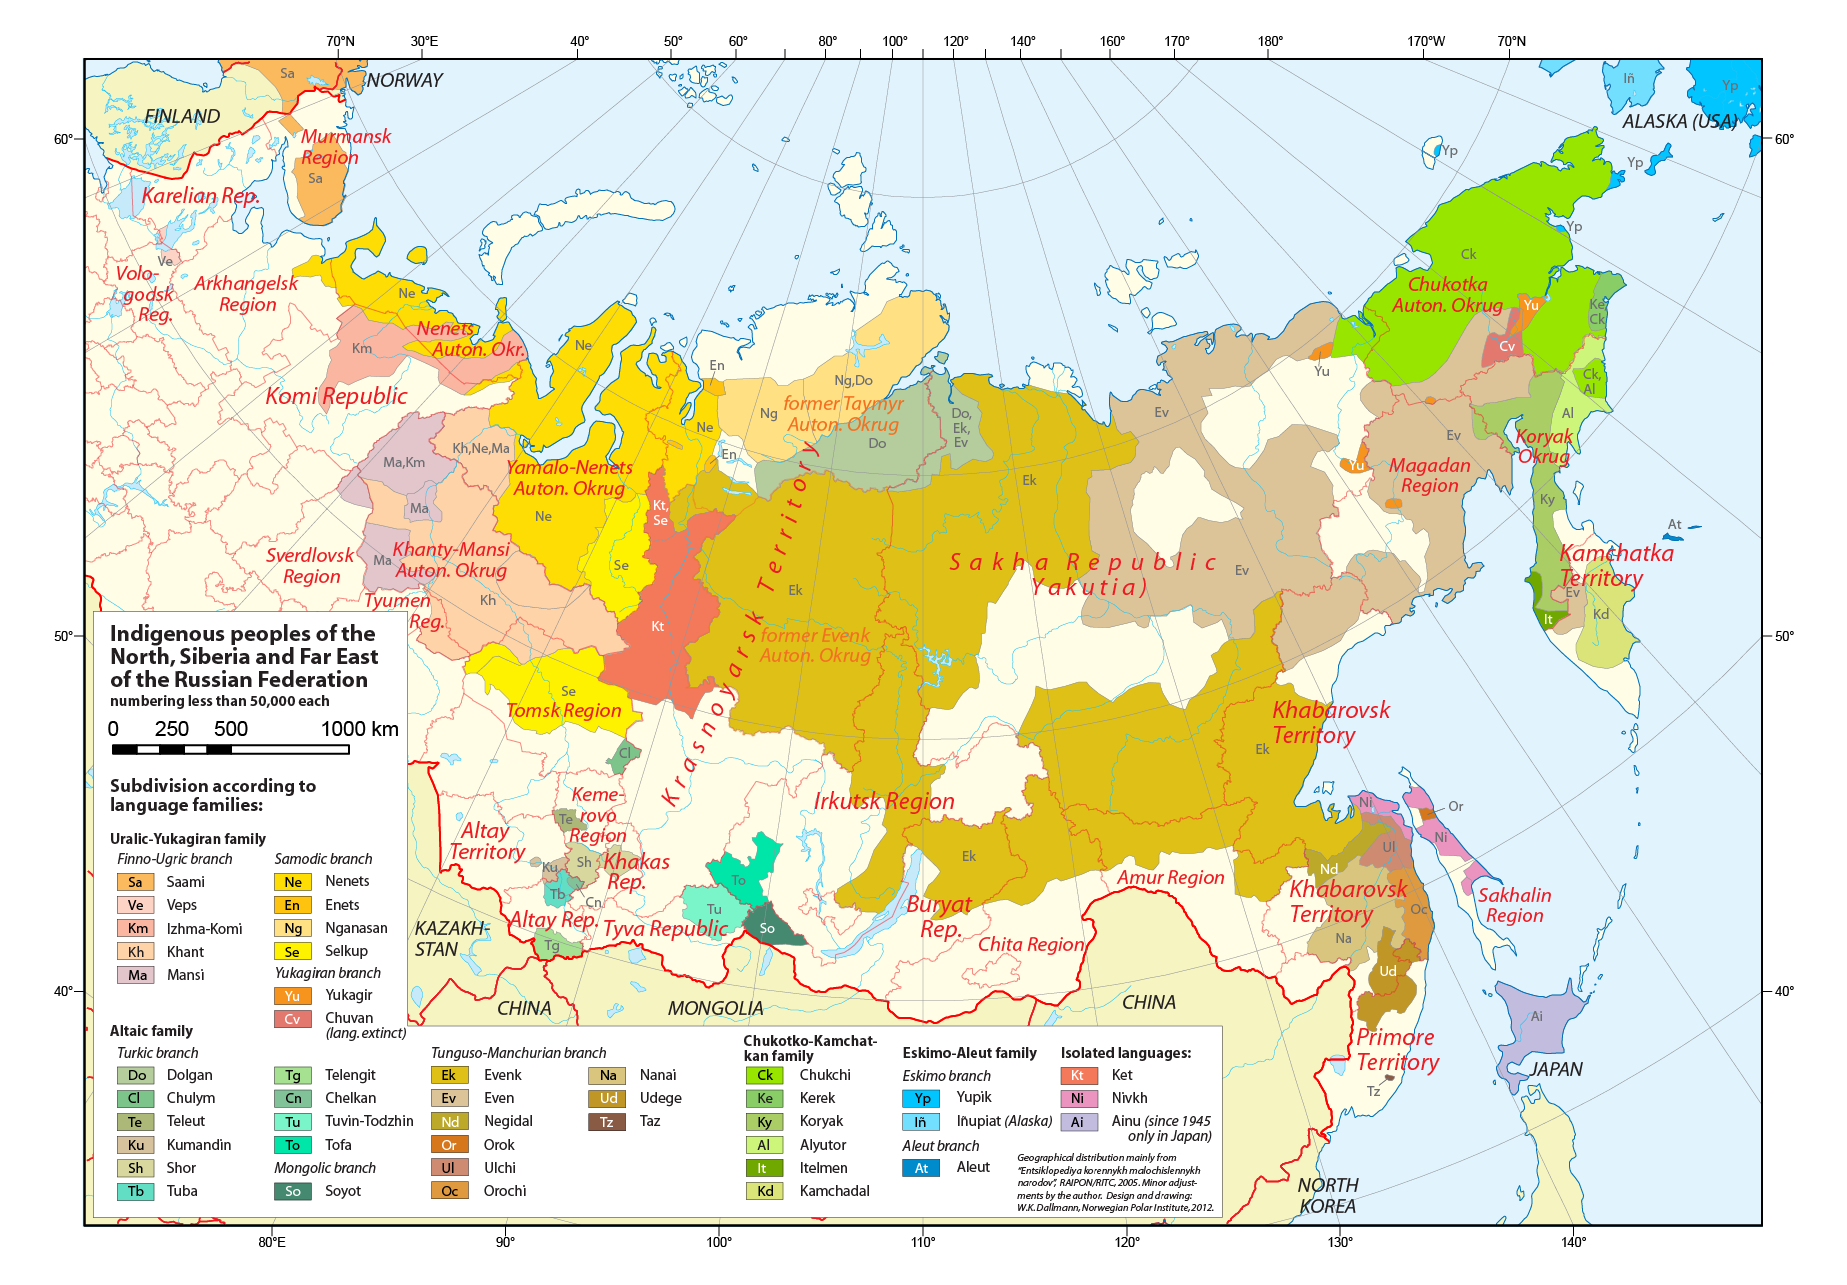 Indg Peoples of Russia and Siberia